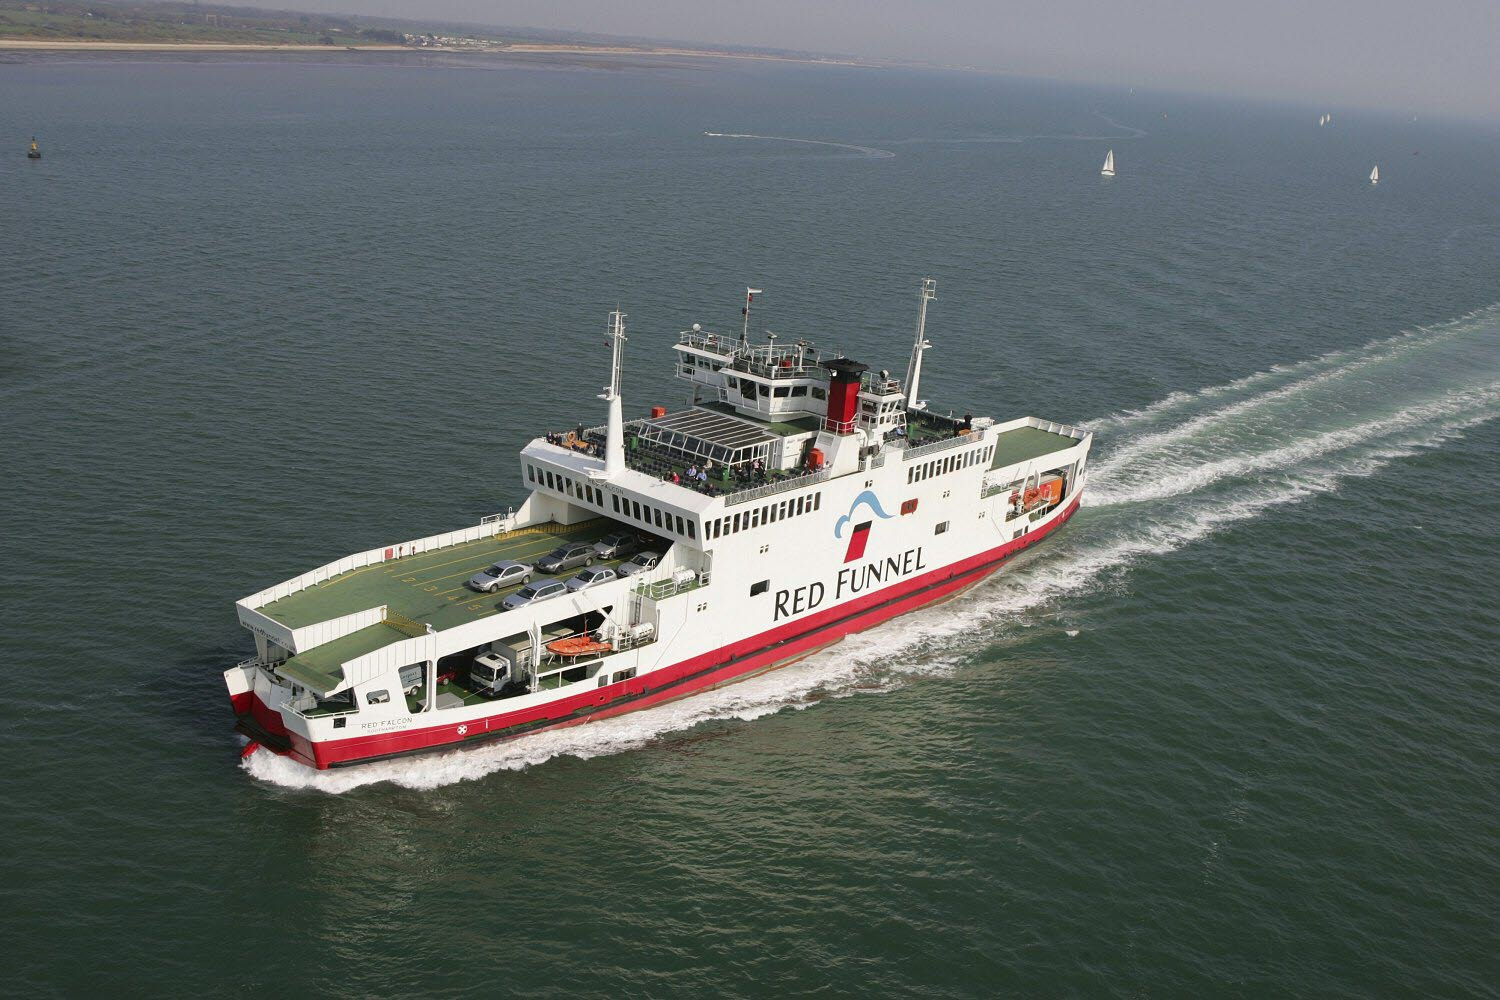 Red Falcon ferry at sea